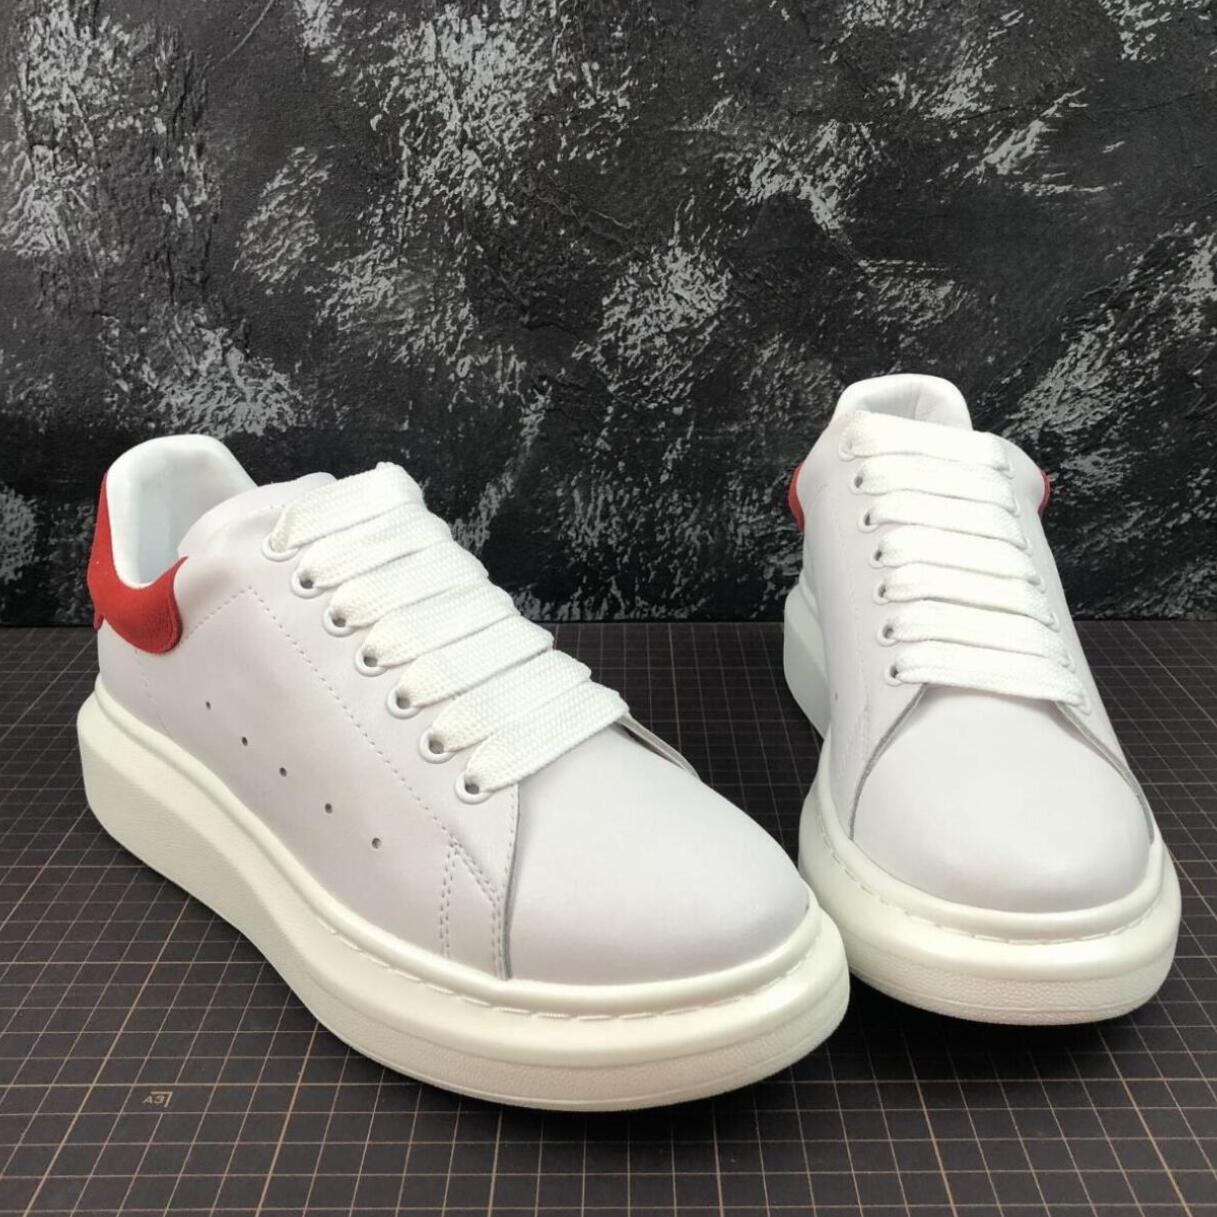 2514df99b 2019 New Release Women Prom Formal R Lace Up Casual Sneakers Unisex ...